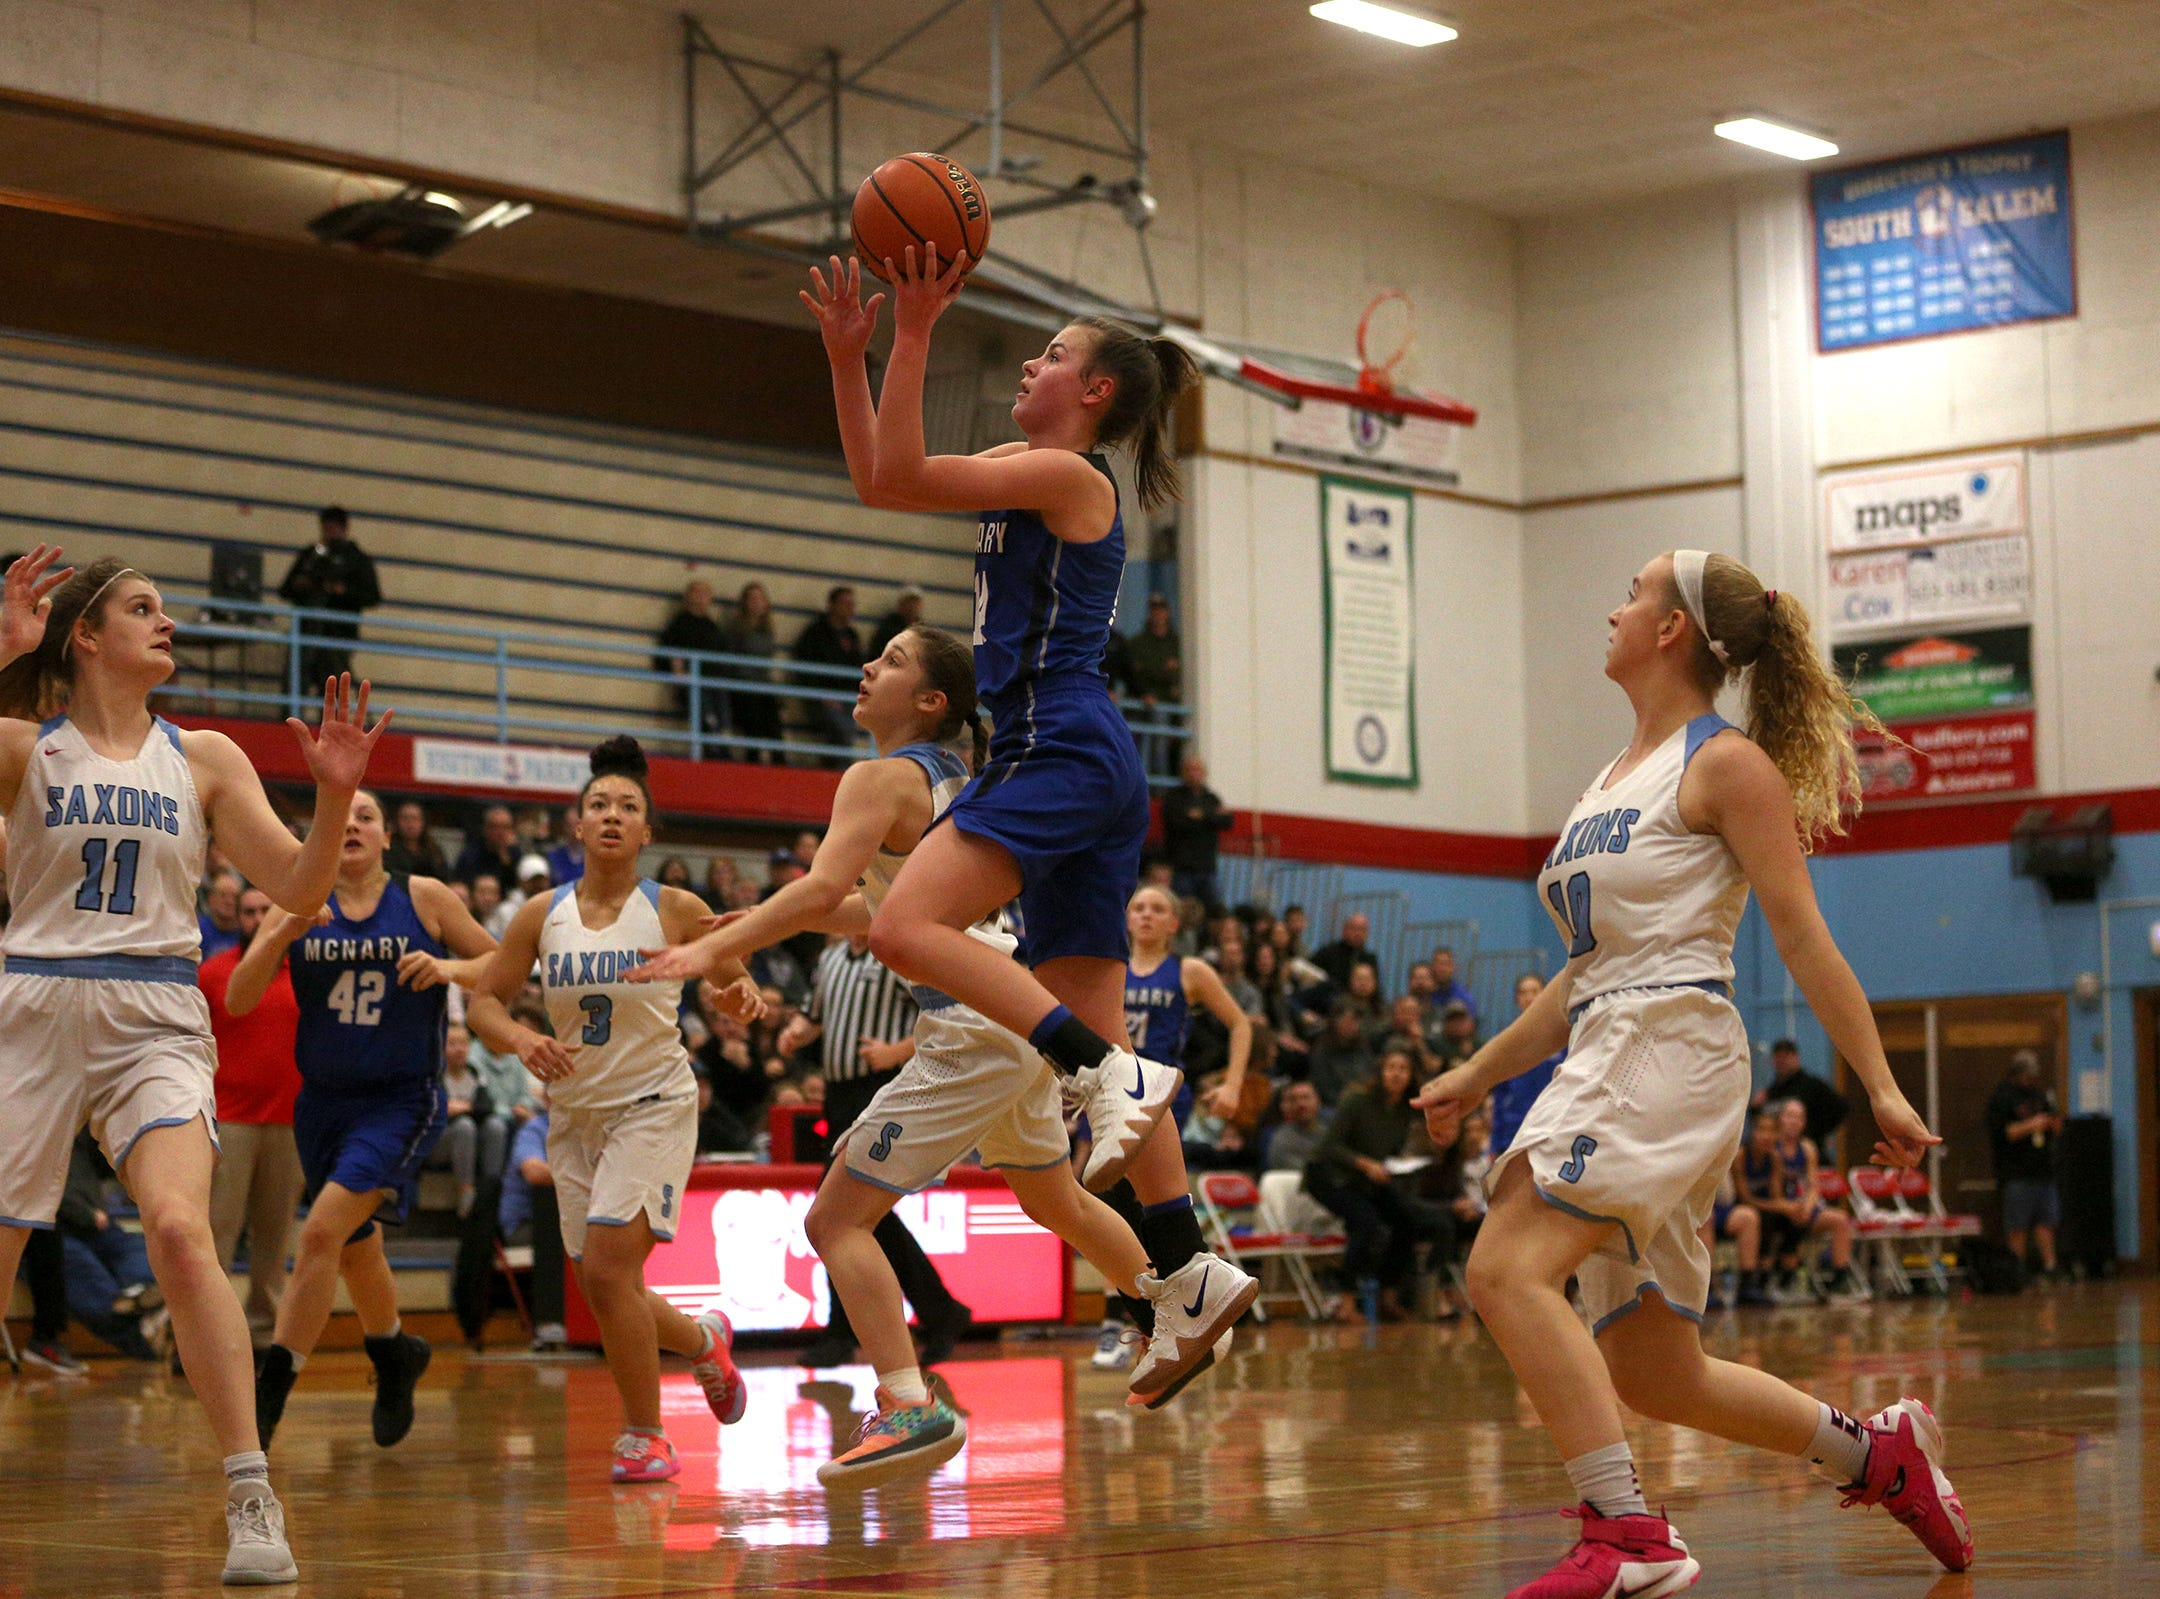 McNary's Leah Doutt (14) attempts a layup during the South Salem High School girls basketball game against McNary High School in Salem on Thursday, Jan. 31, 2019.